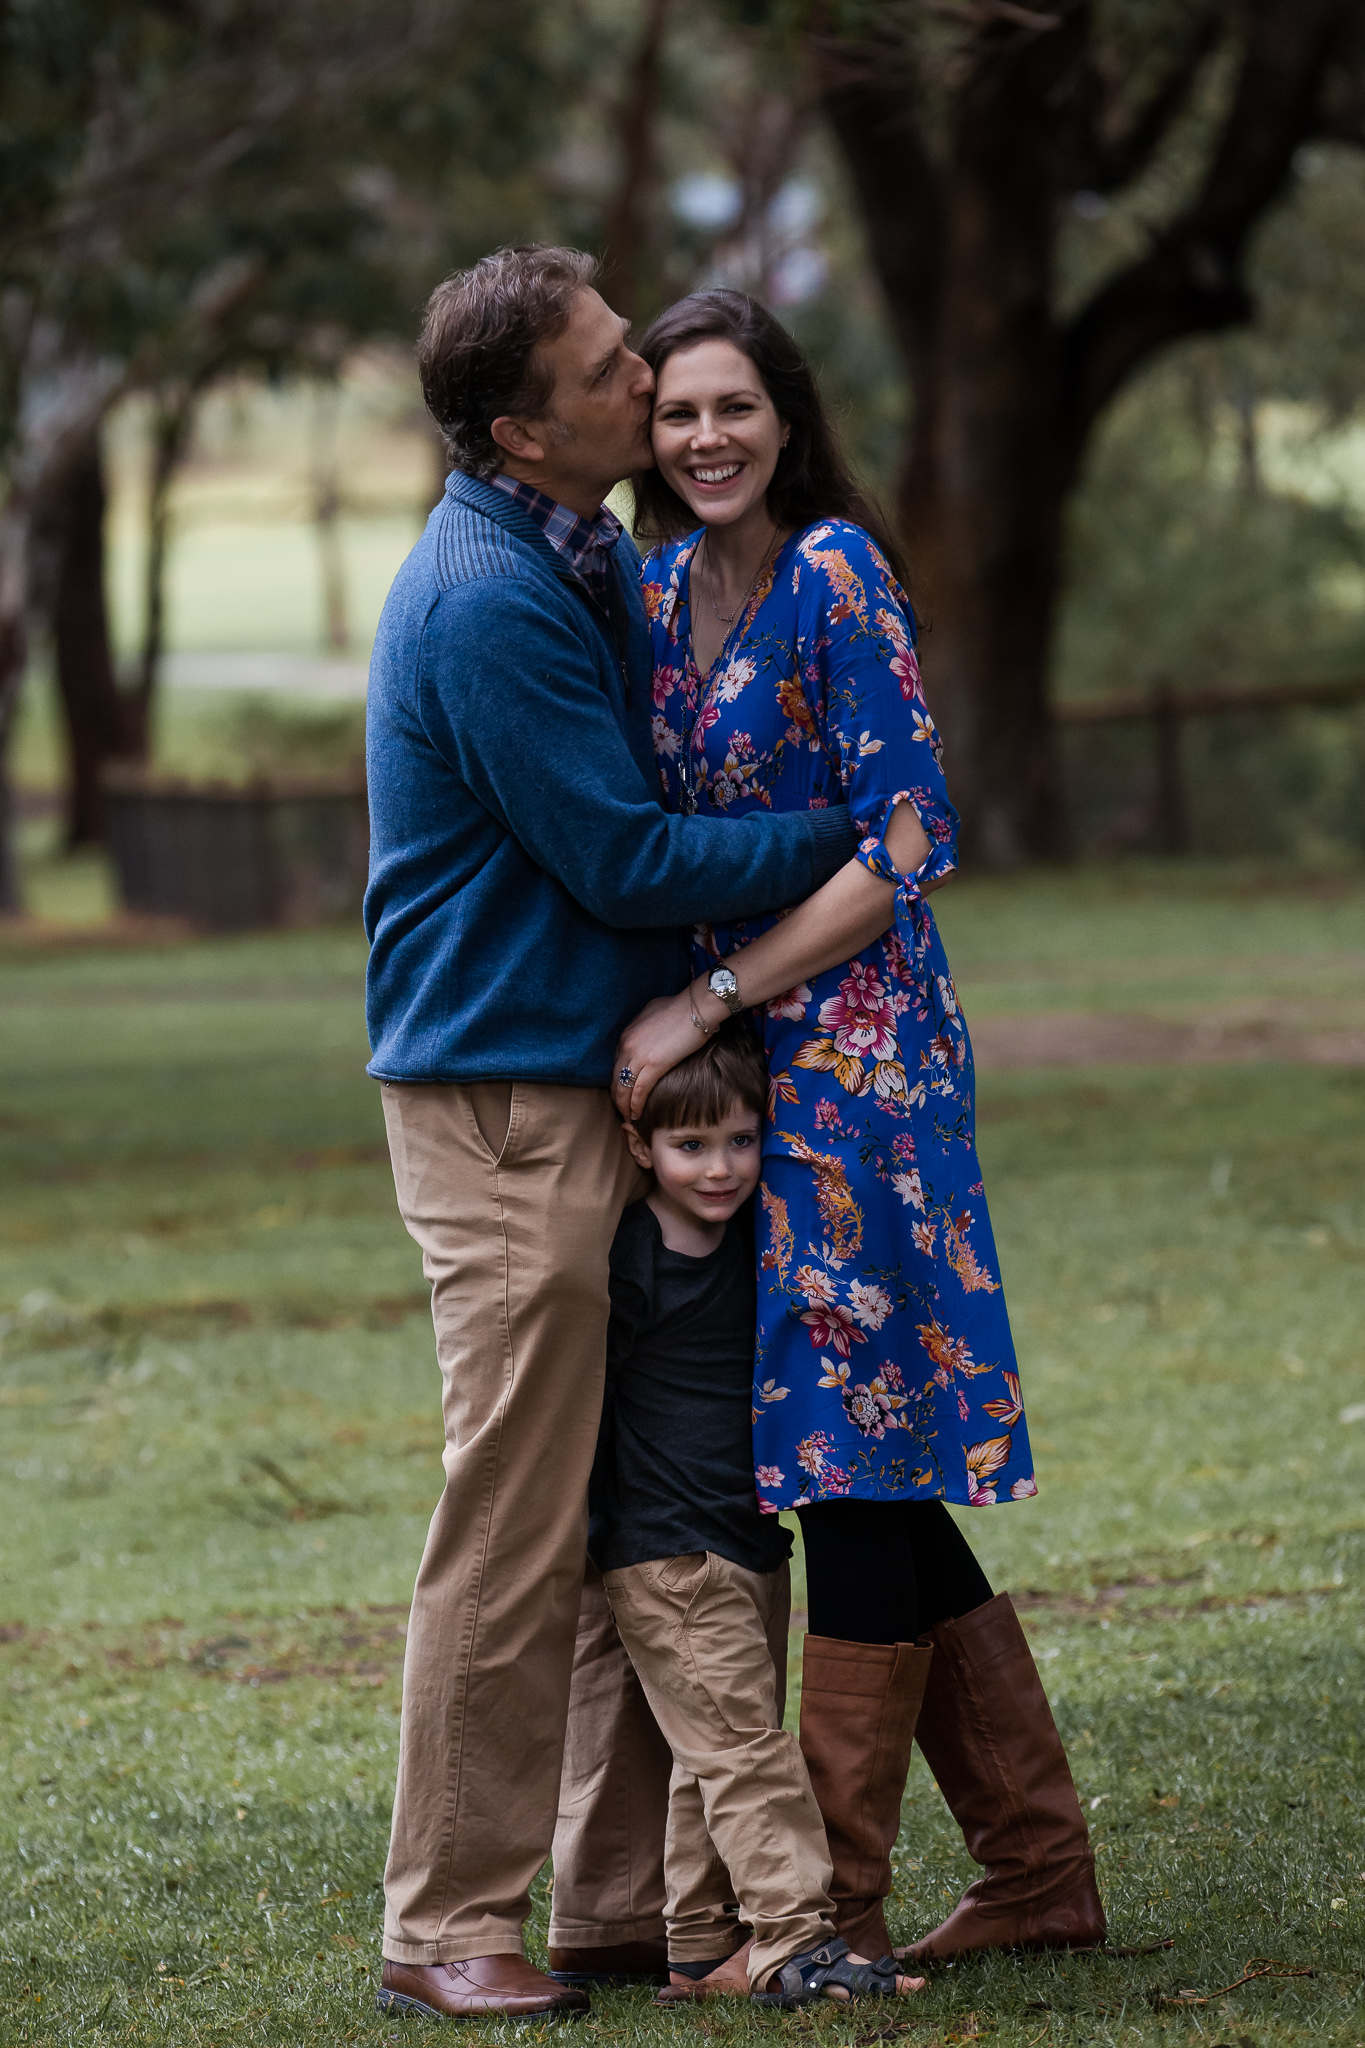 Jack-and-Purdy-Perth-Family-Photographer-13.jpg